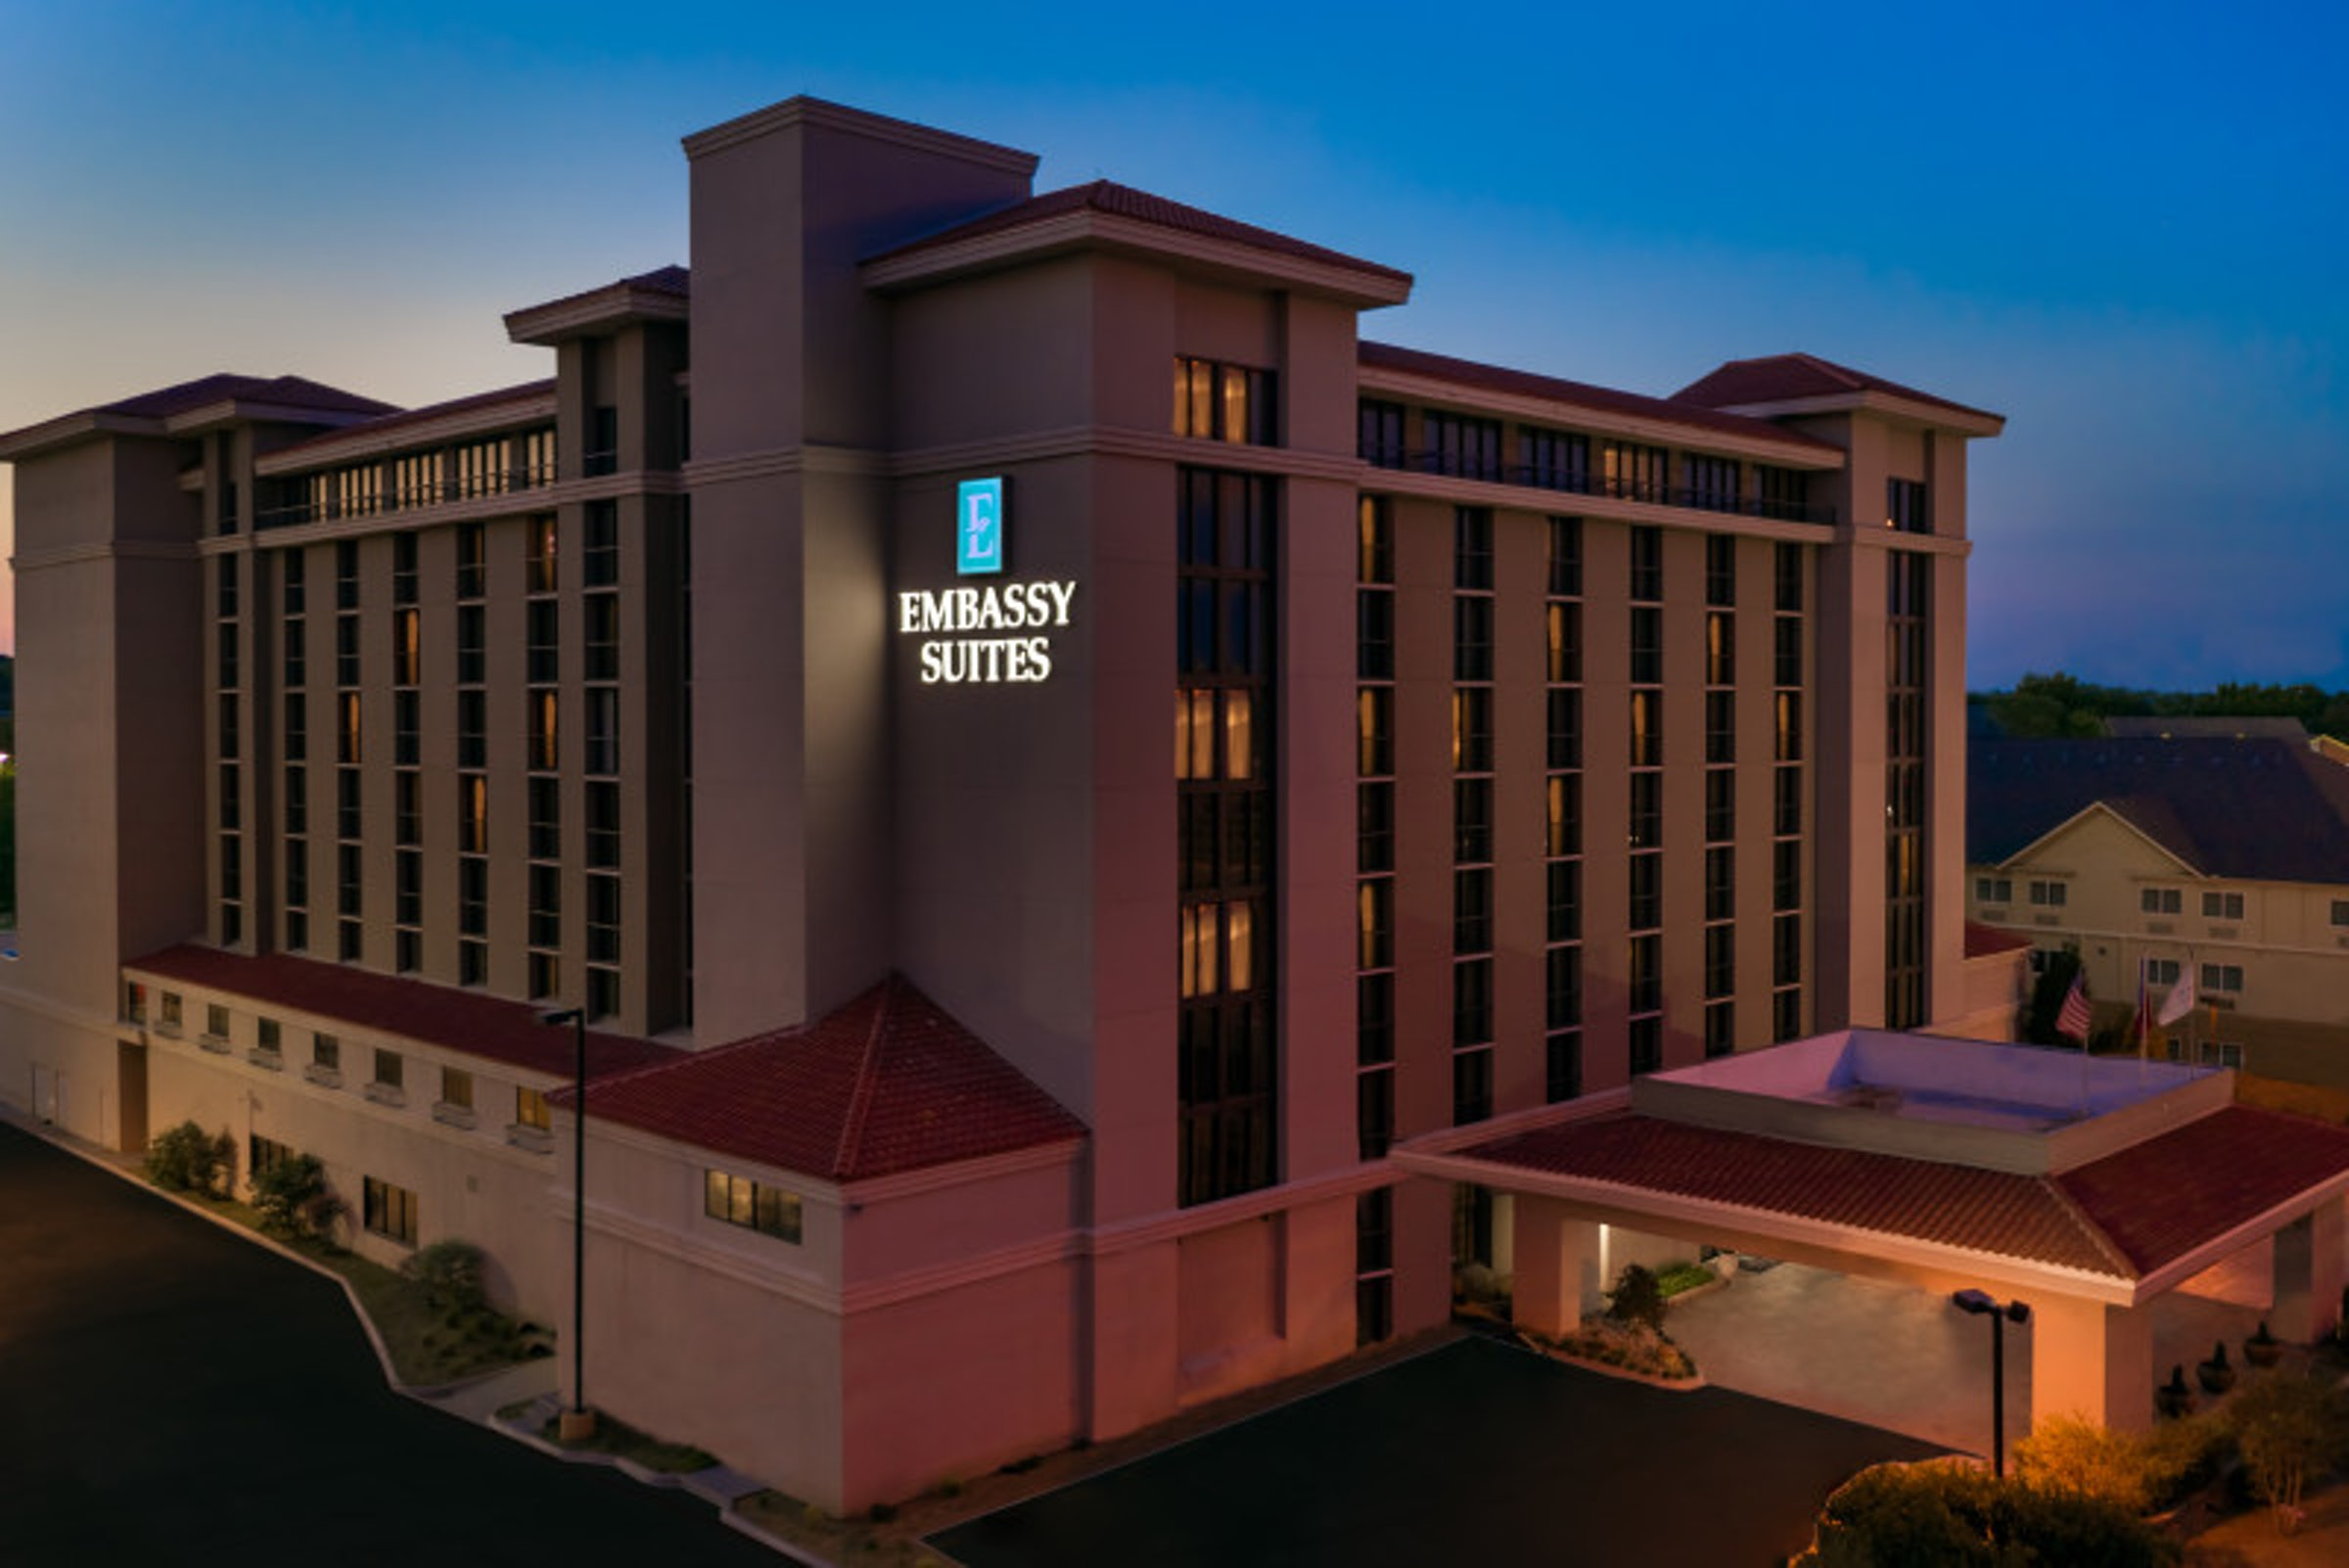 Embassy Suites by Hilton Dallas Park Central in Beyond Dallas